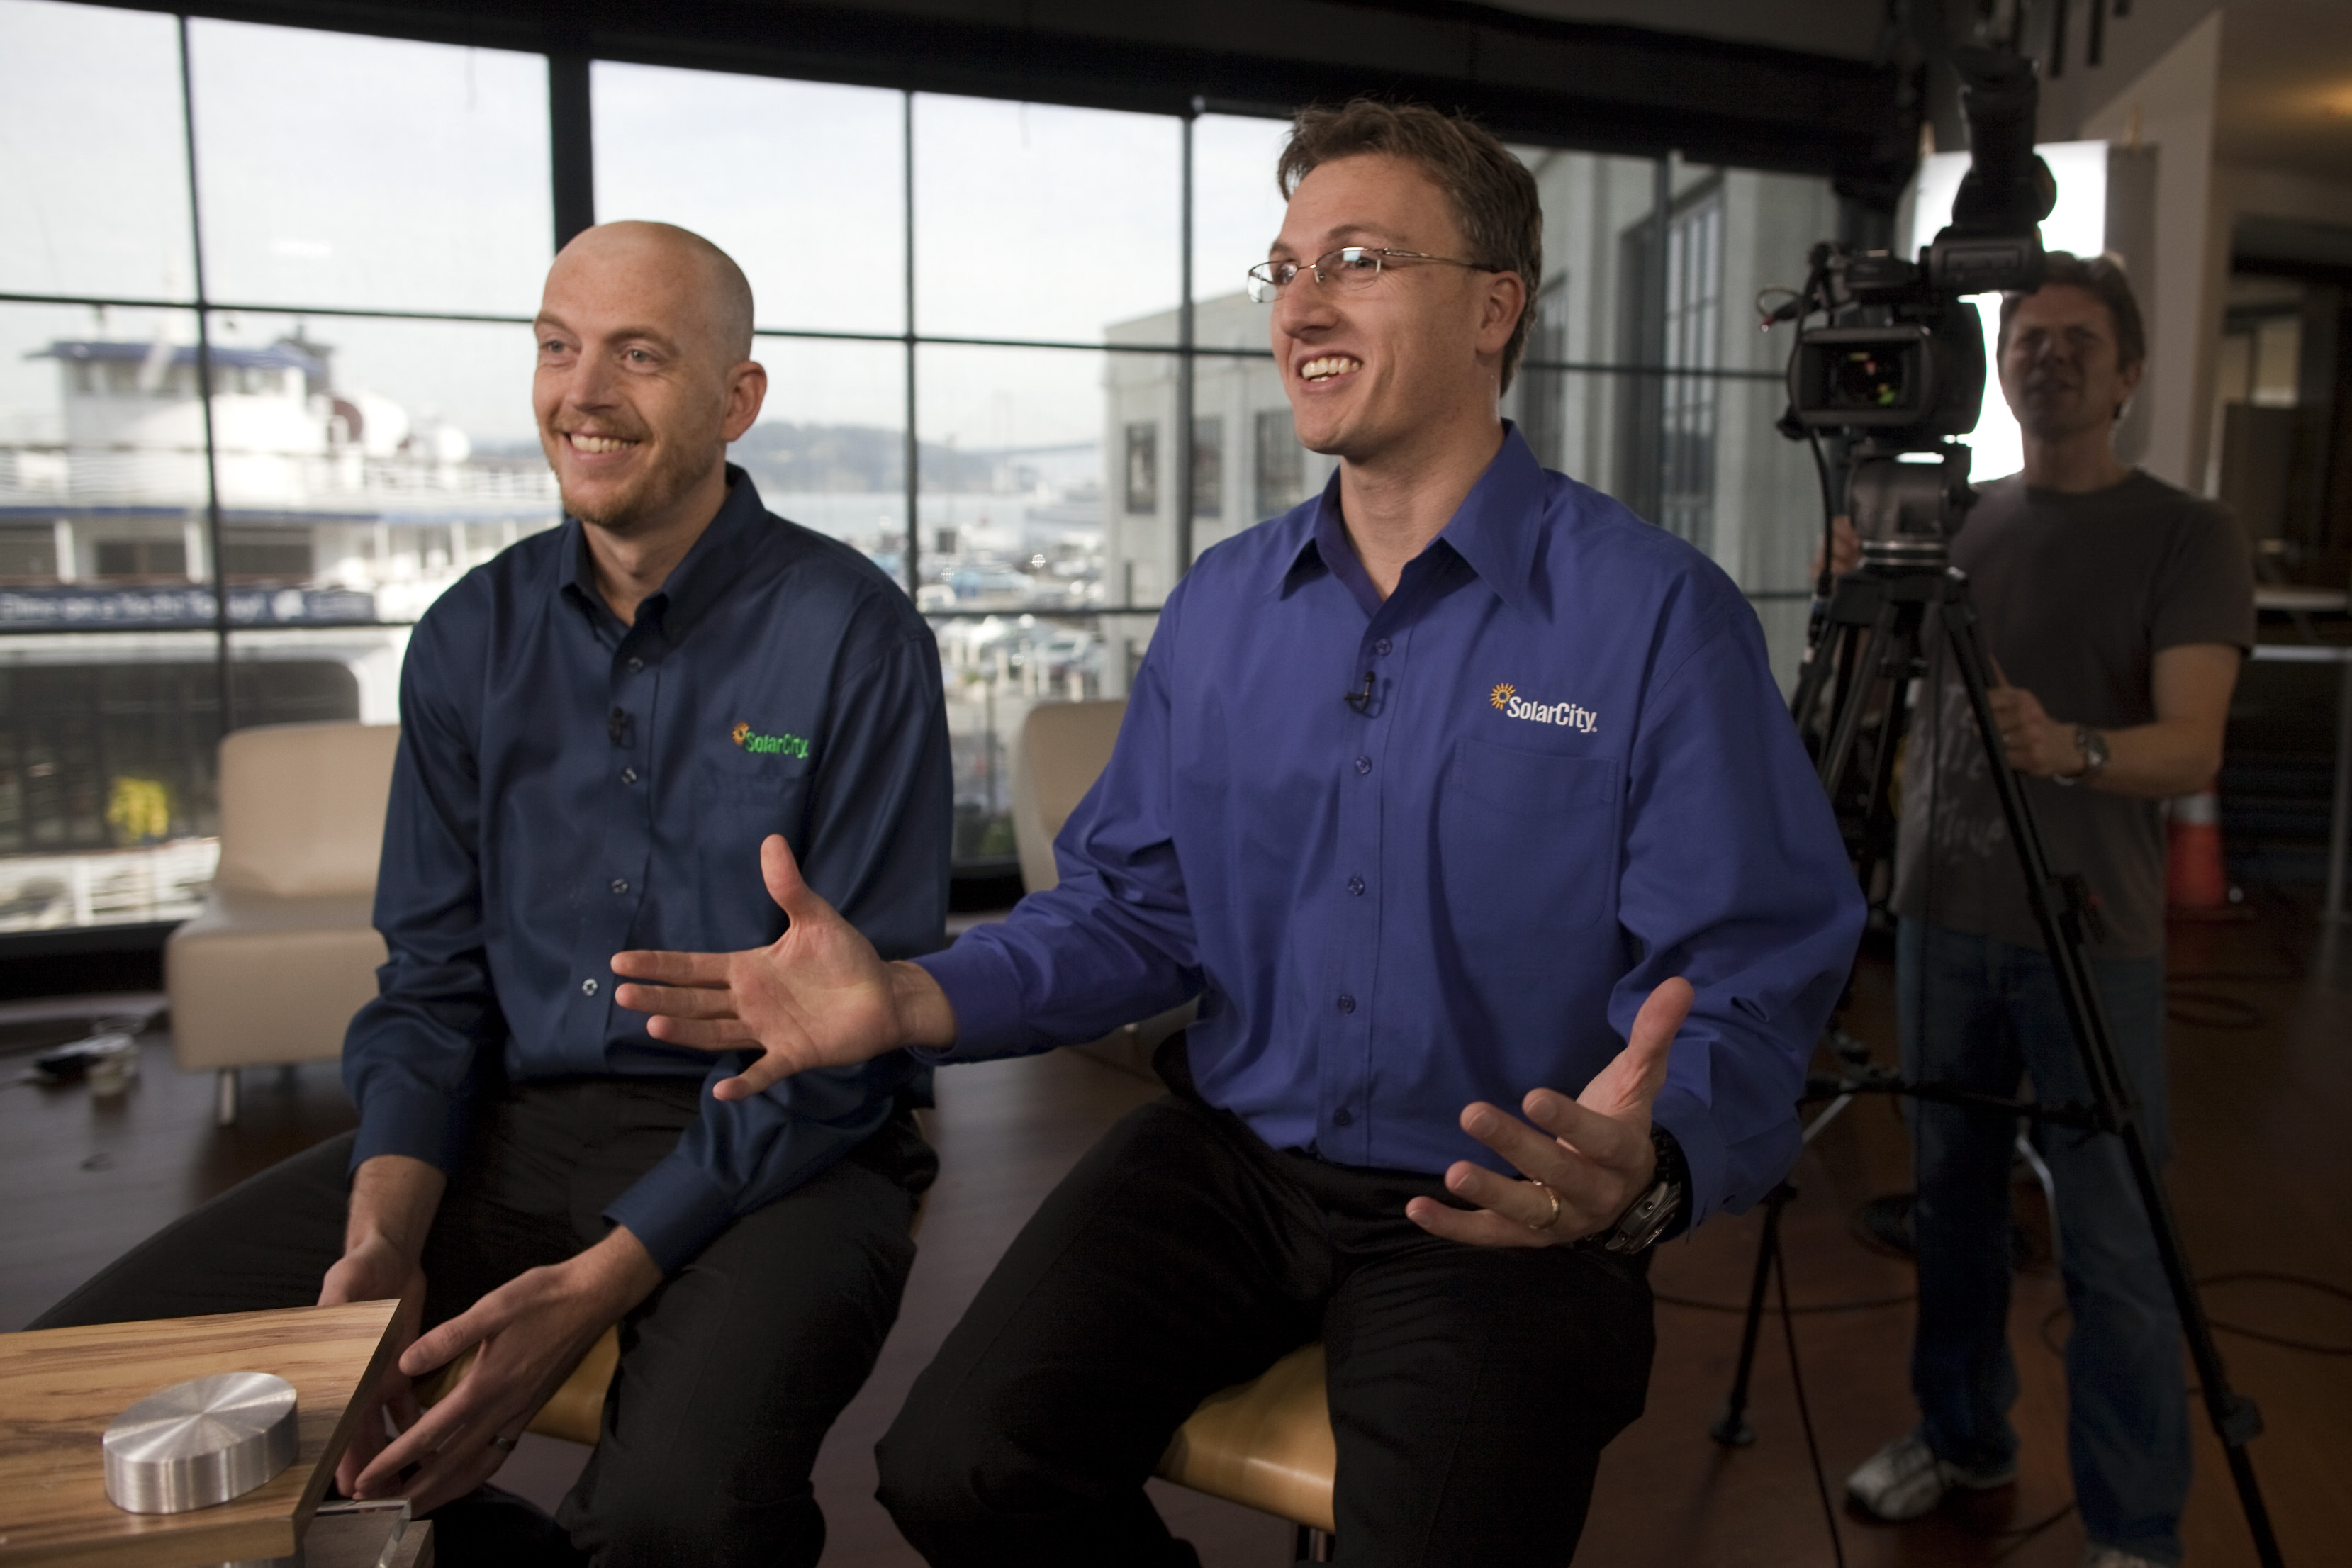 SolarCity co-founder Peter Rive will leave Tesla, following